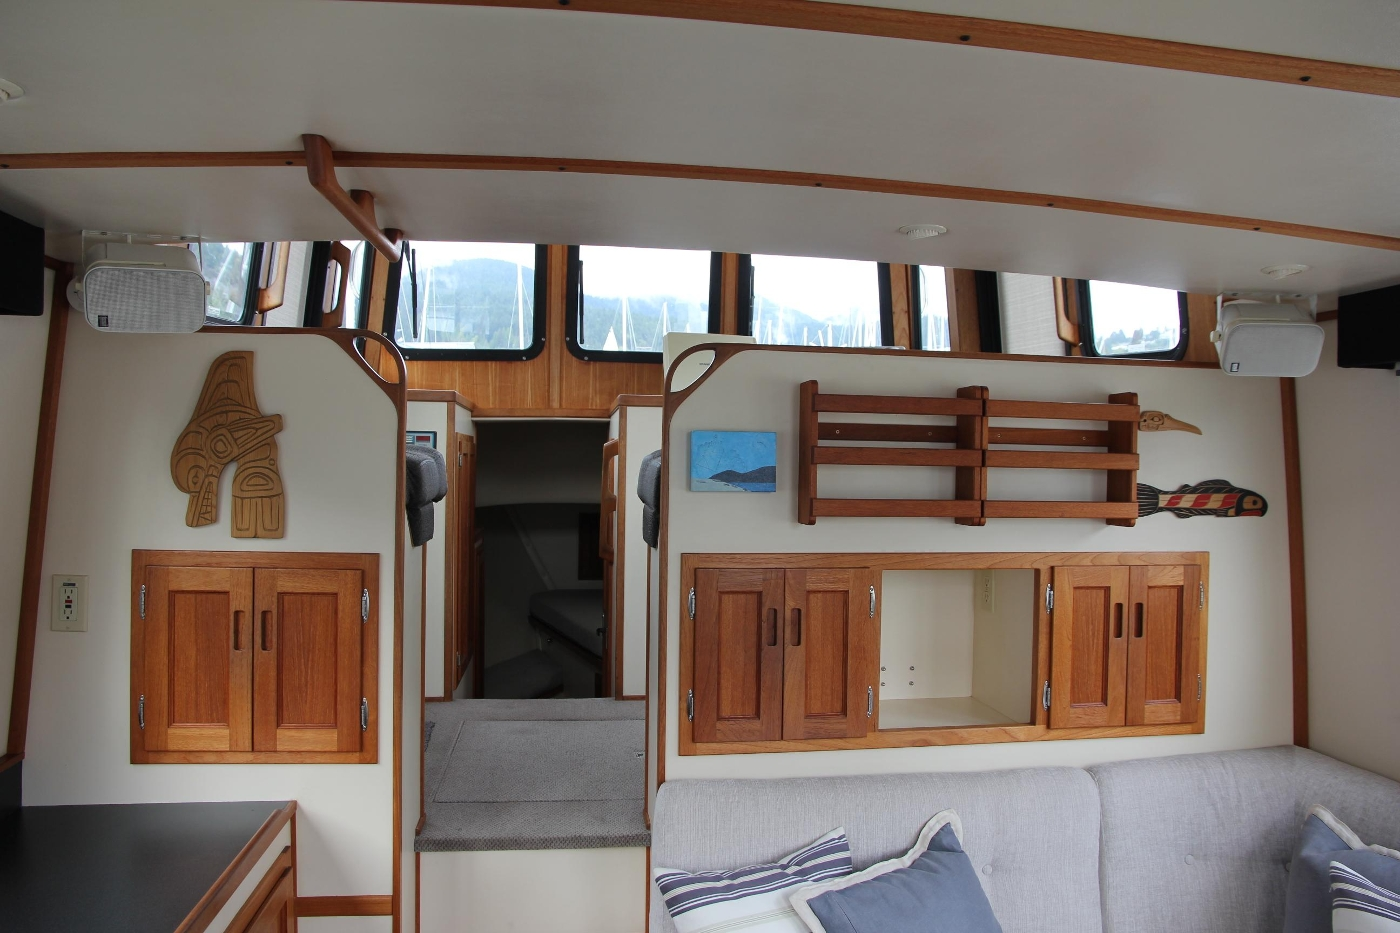 2001 Nordic Tugs 32 Pilothouse, Salon Looking at Pilothouse